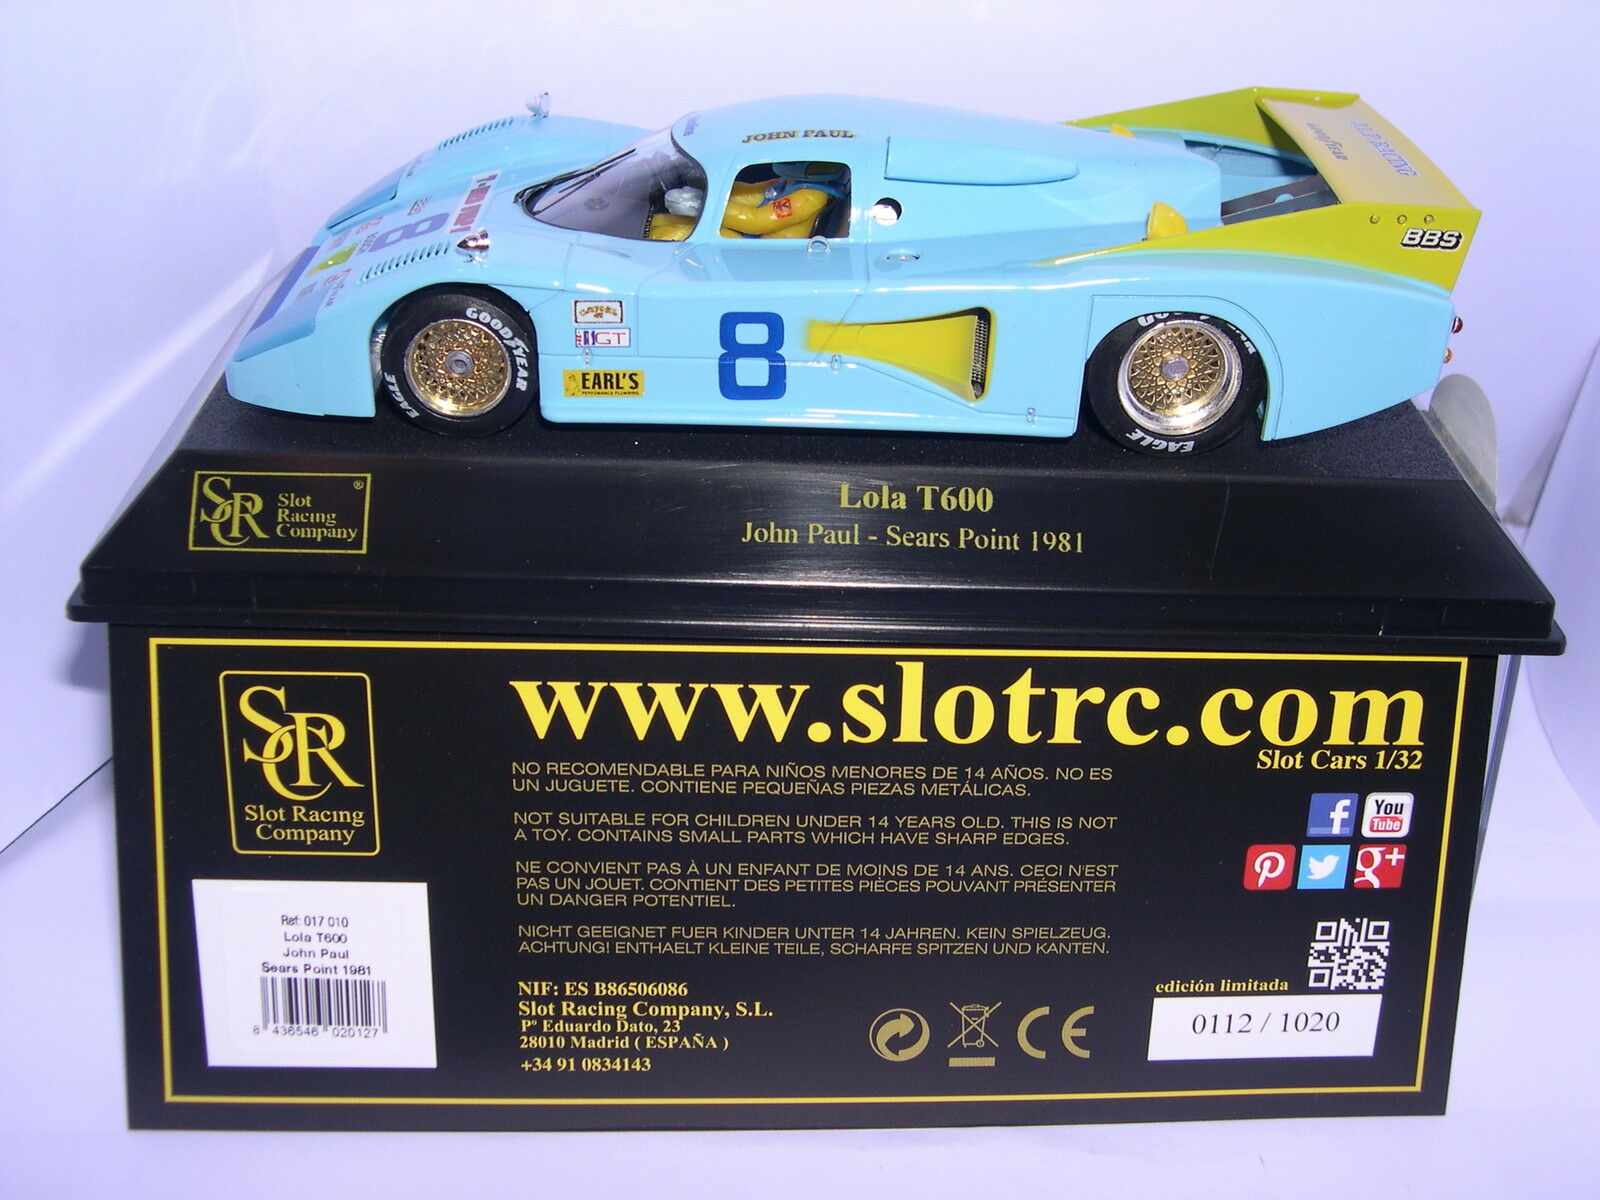 SRC 017 010 LOLA T600  8 SEARS POINT 1981 JHON PAUL LTED.ED.1020 UNITS MB